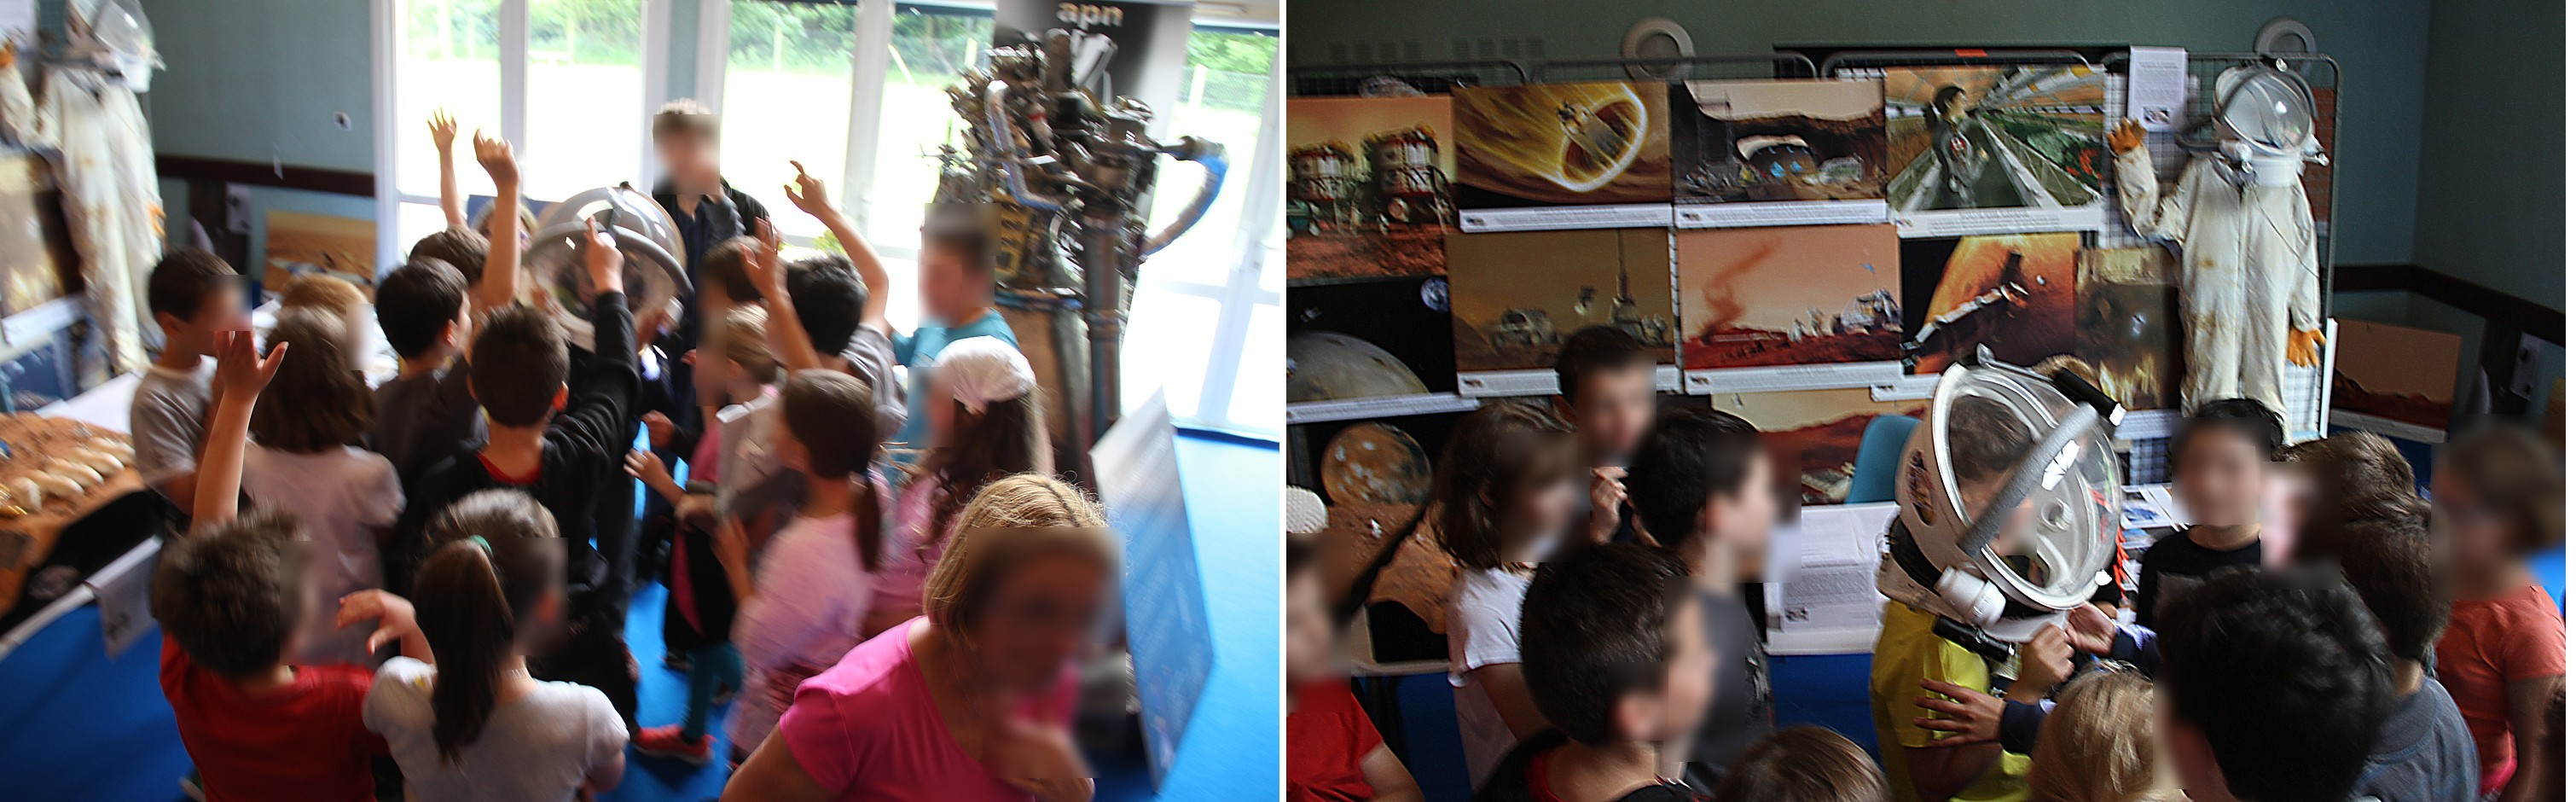 16 06 13 - 11h 43m 13s - Expo APM St Wandrille montage